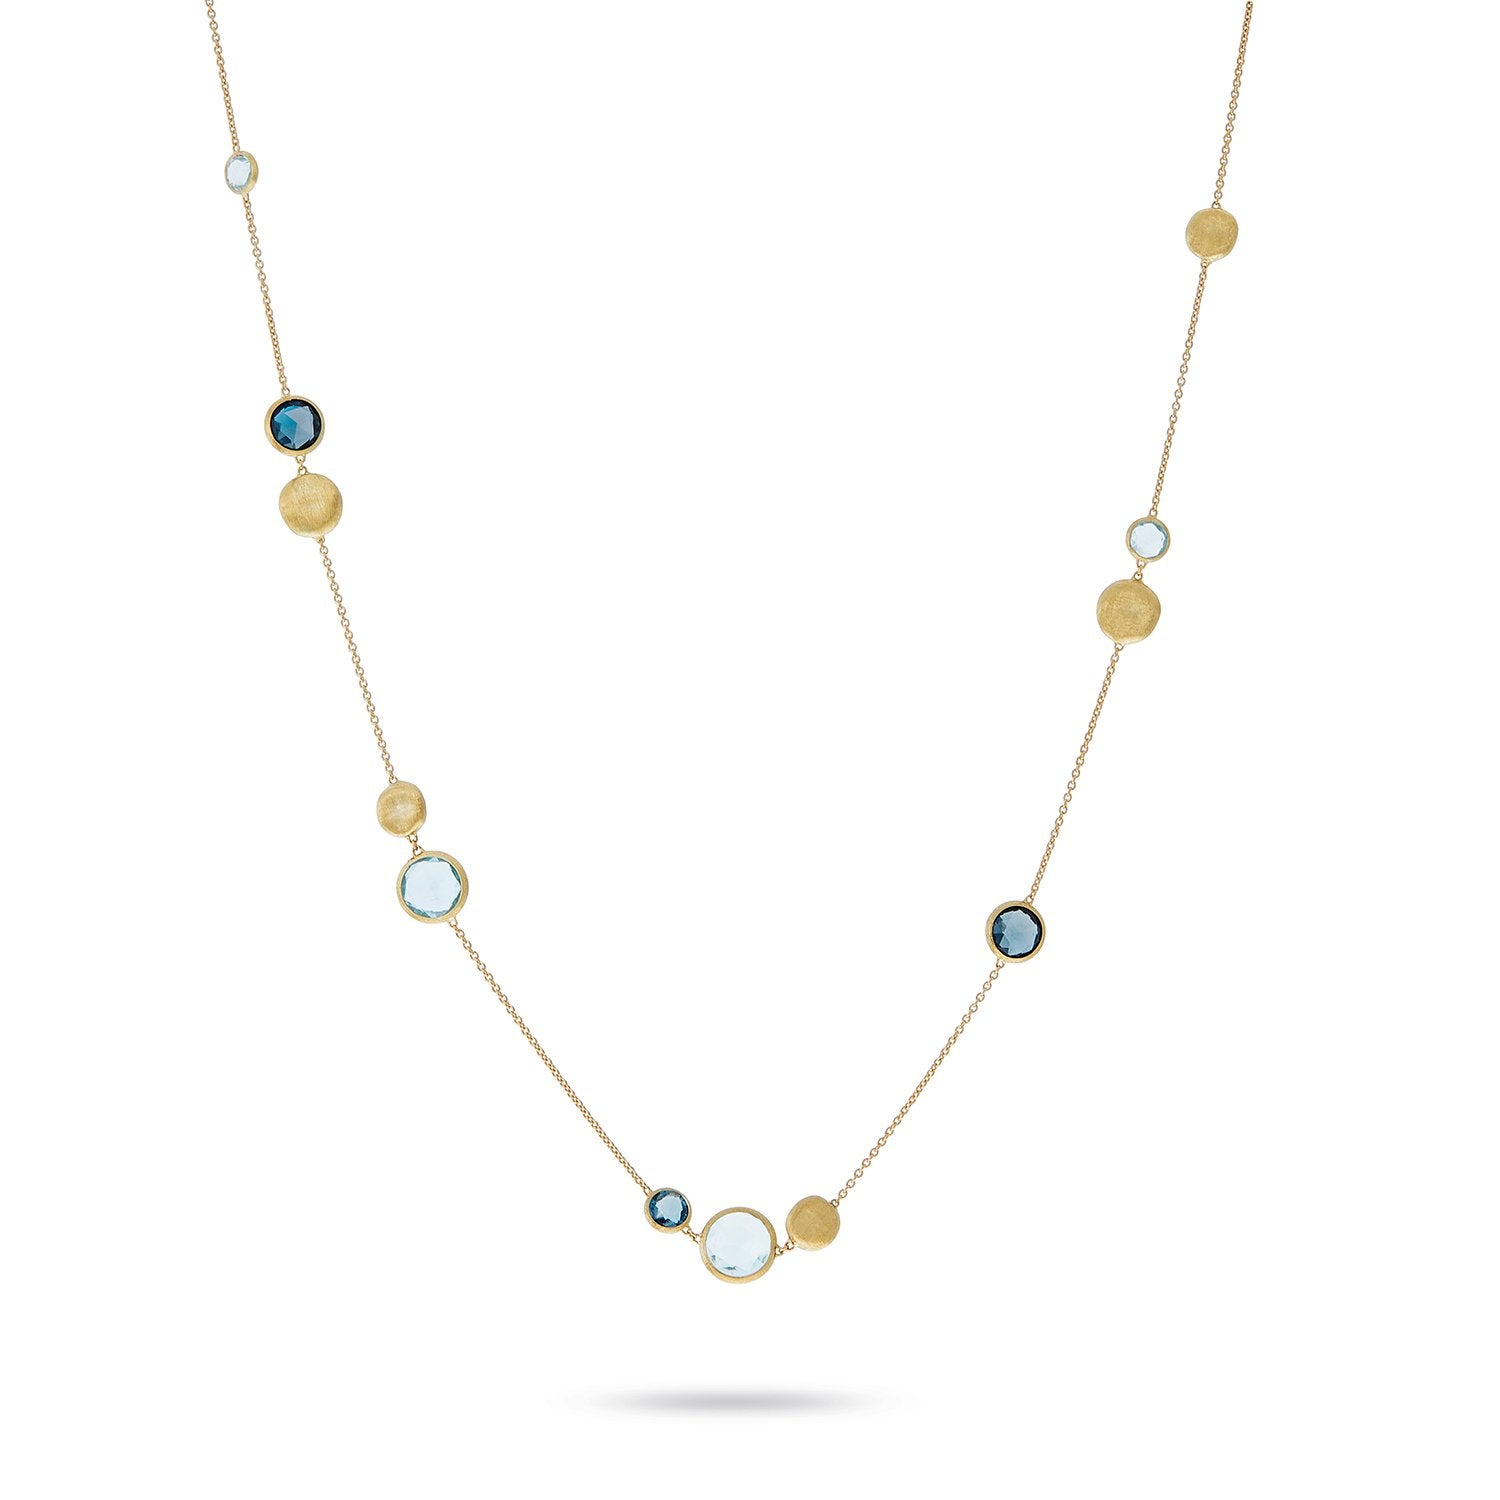 Jaipur 18K Yellow Gold Mixed Blue Topaz Necklace